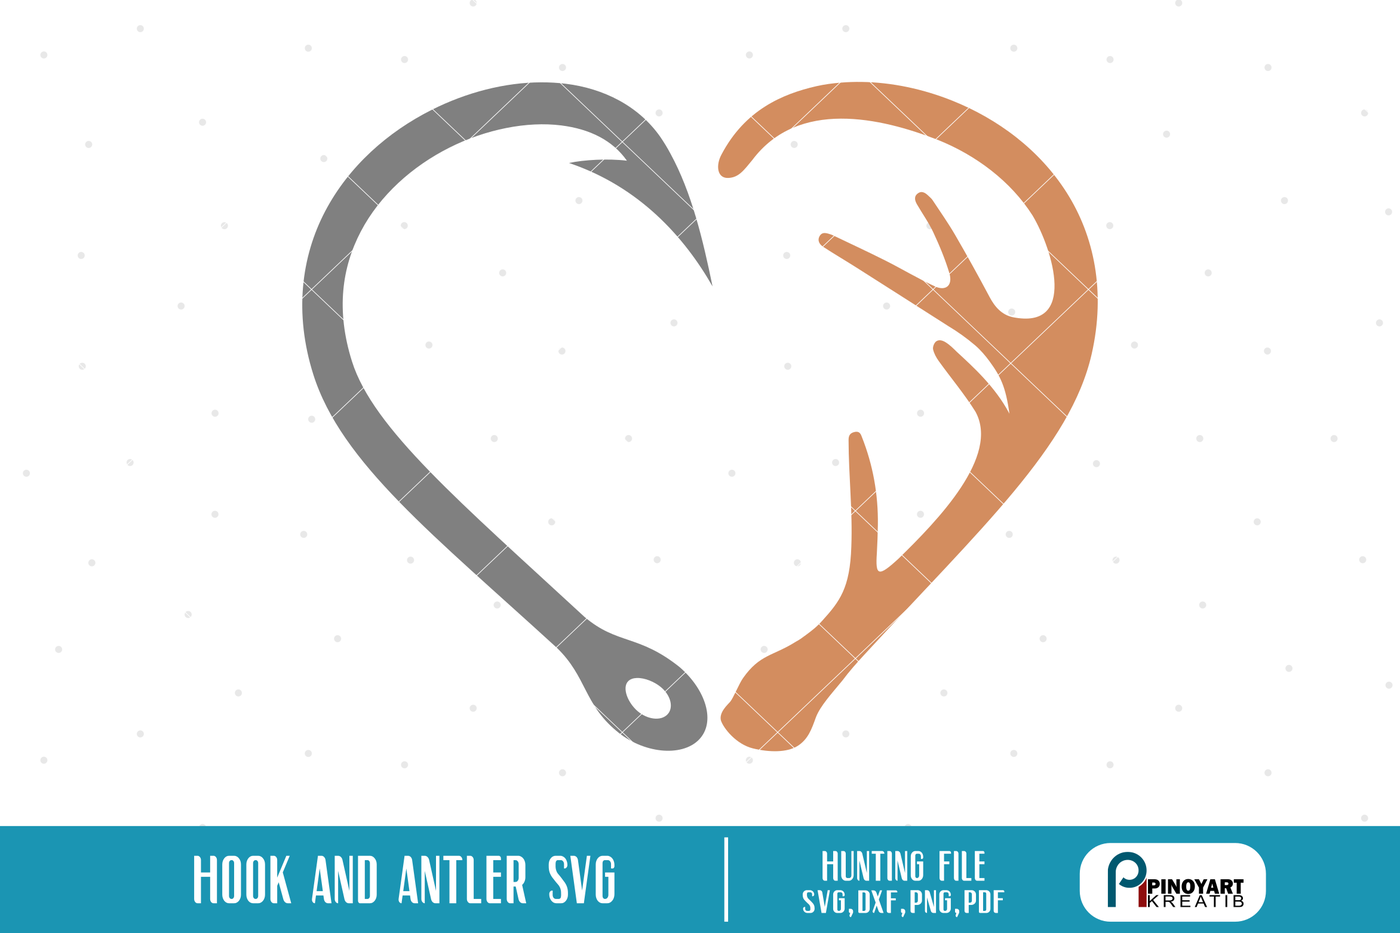 Hook And Antler Svg Hook Svg Antler Svg Deer Hunting Svg Deer